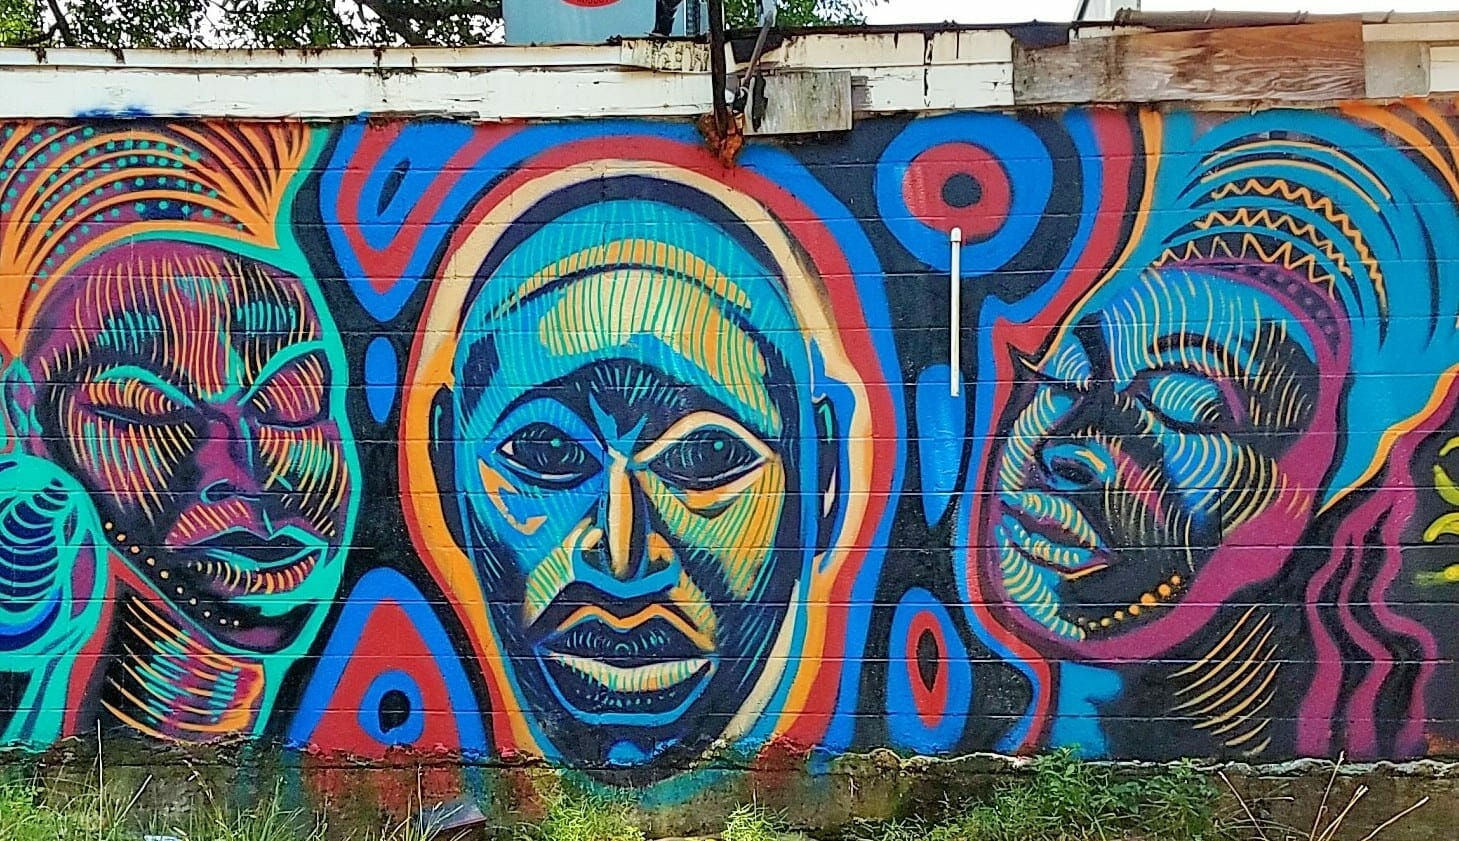 Today in street art: You'll see Africa in Corey Barksdale's lines, colors -  ARTS ATL